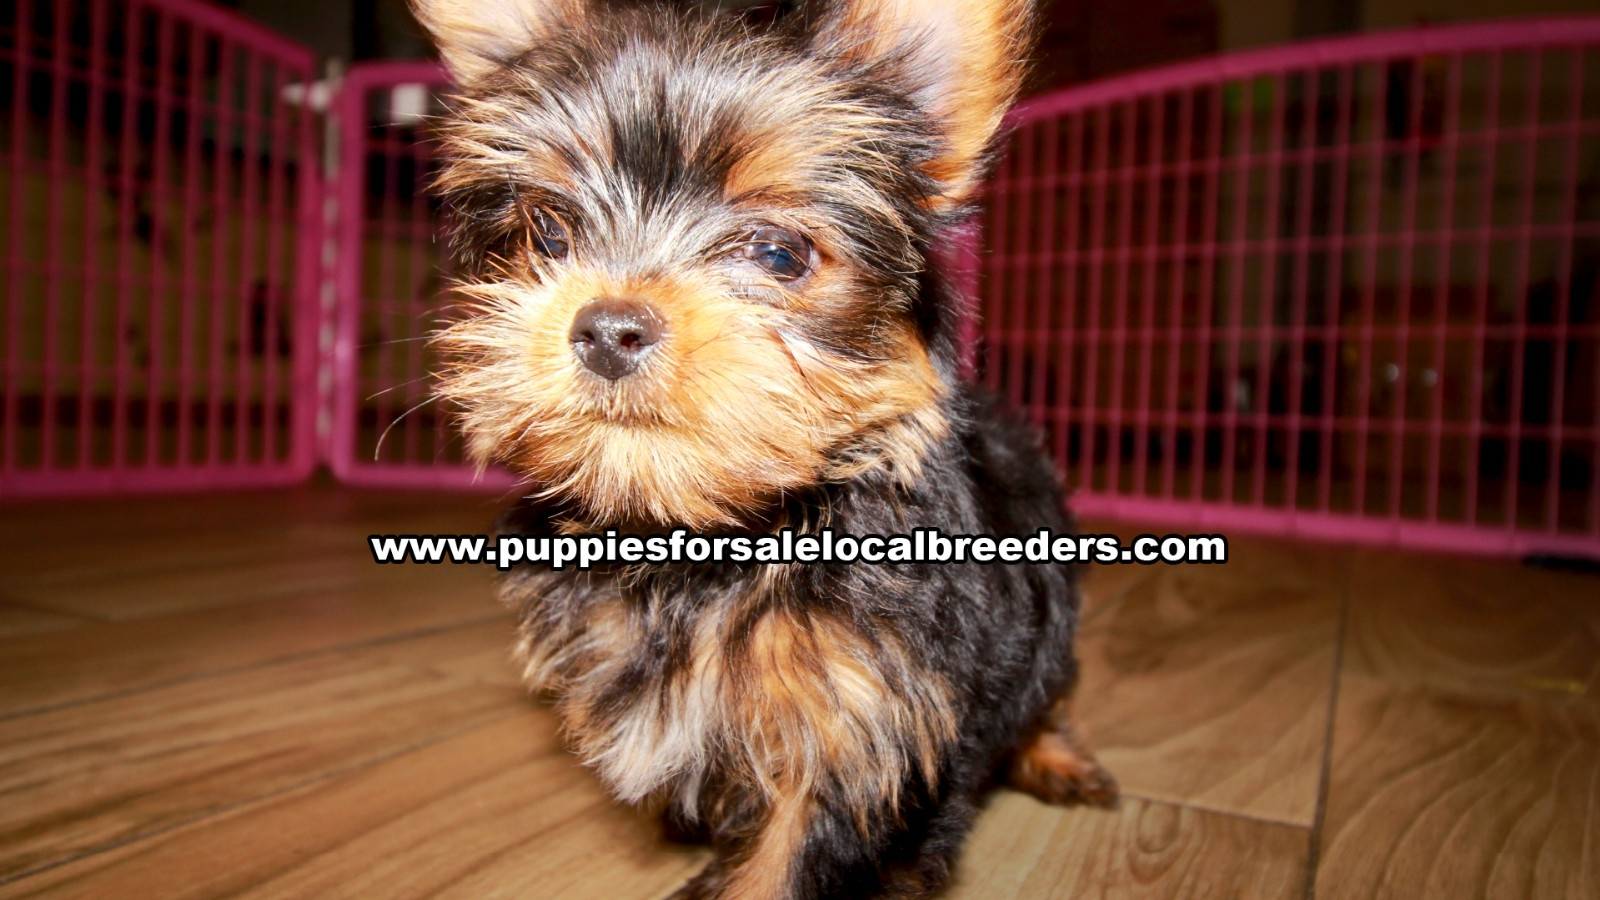 Teacup Yorkie, Puppies For Sale In Georgia, Local Breeders, Near Atlanta, Ga